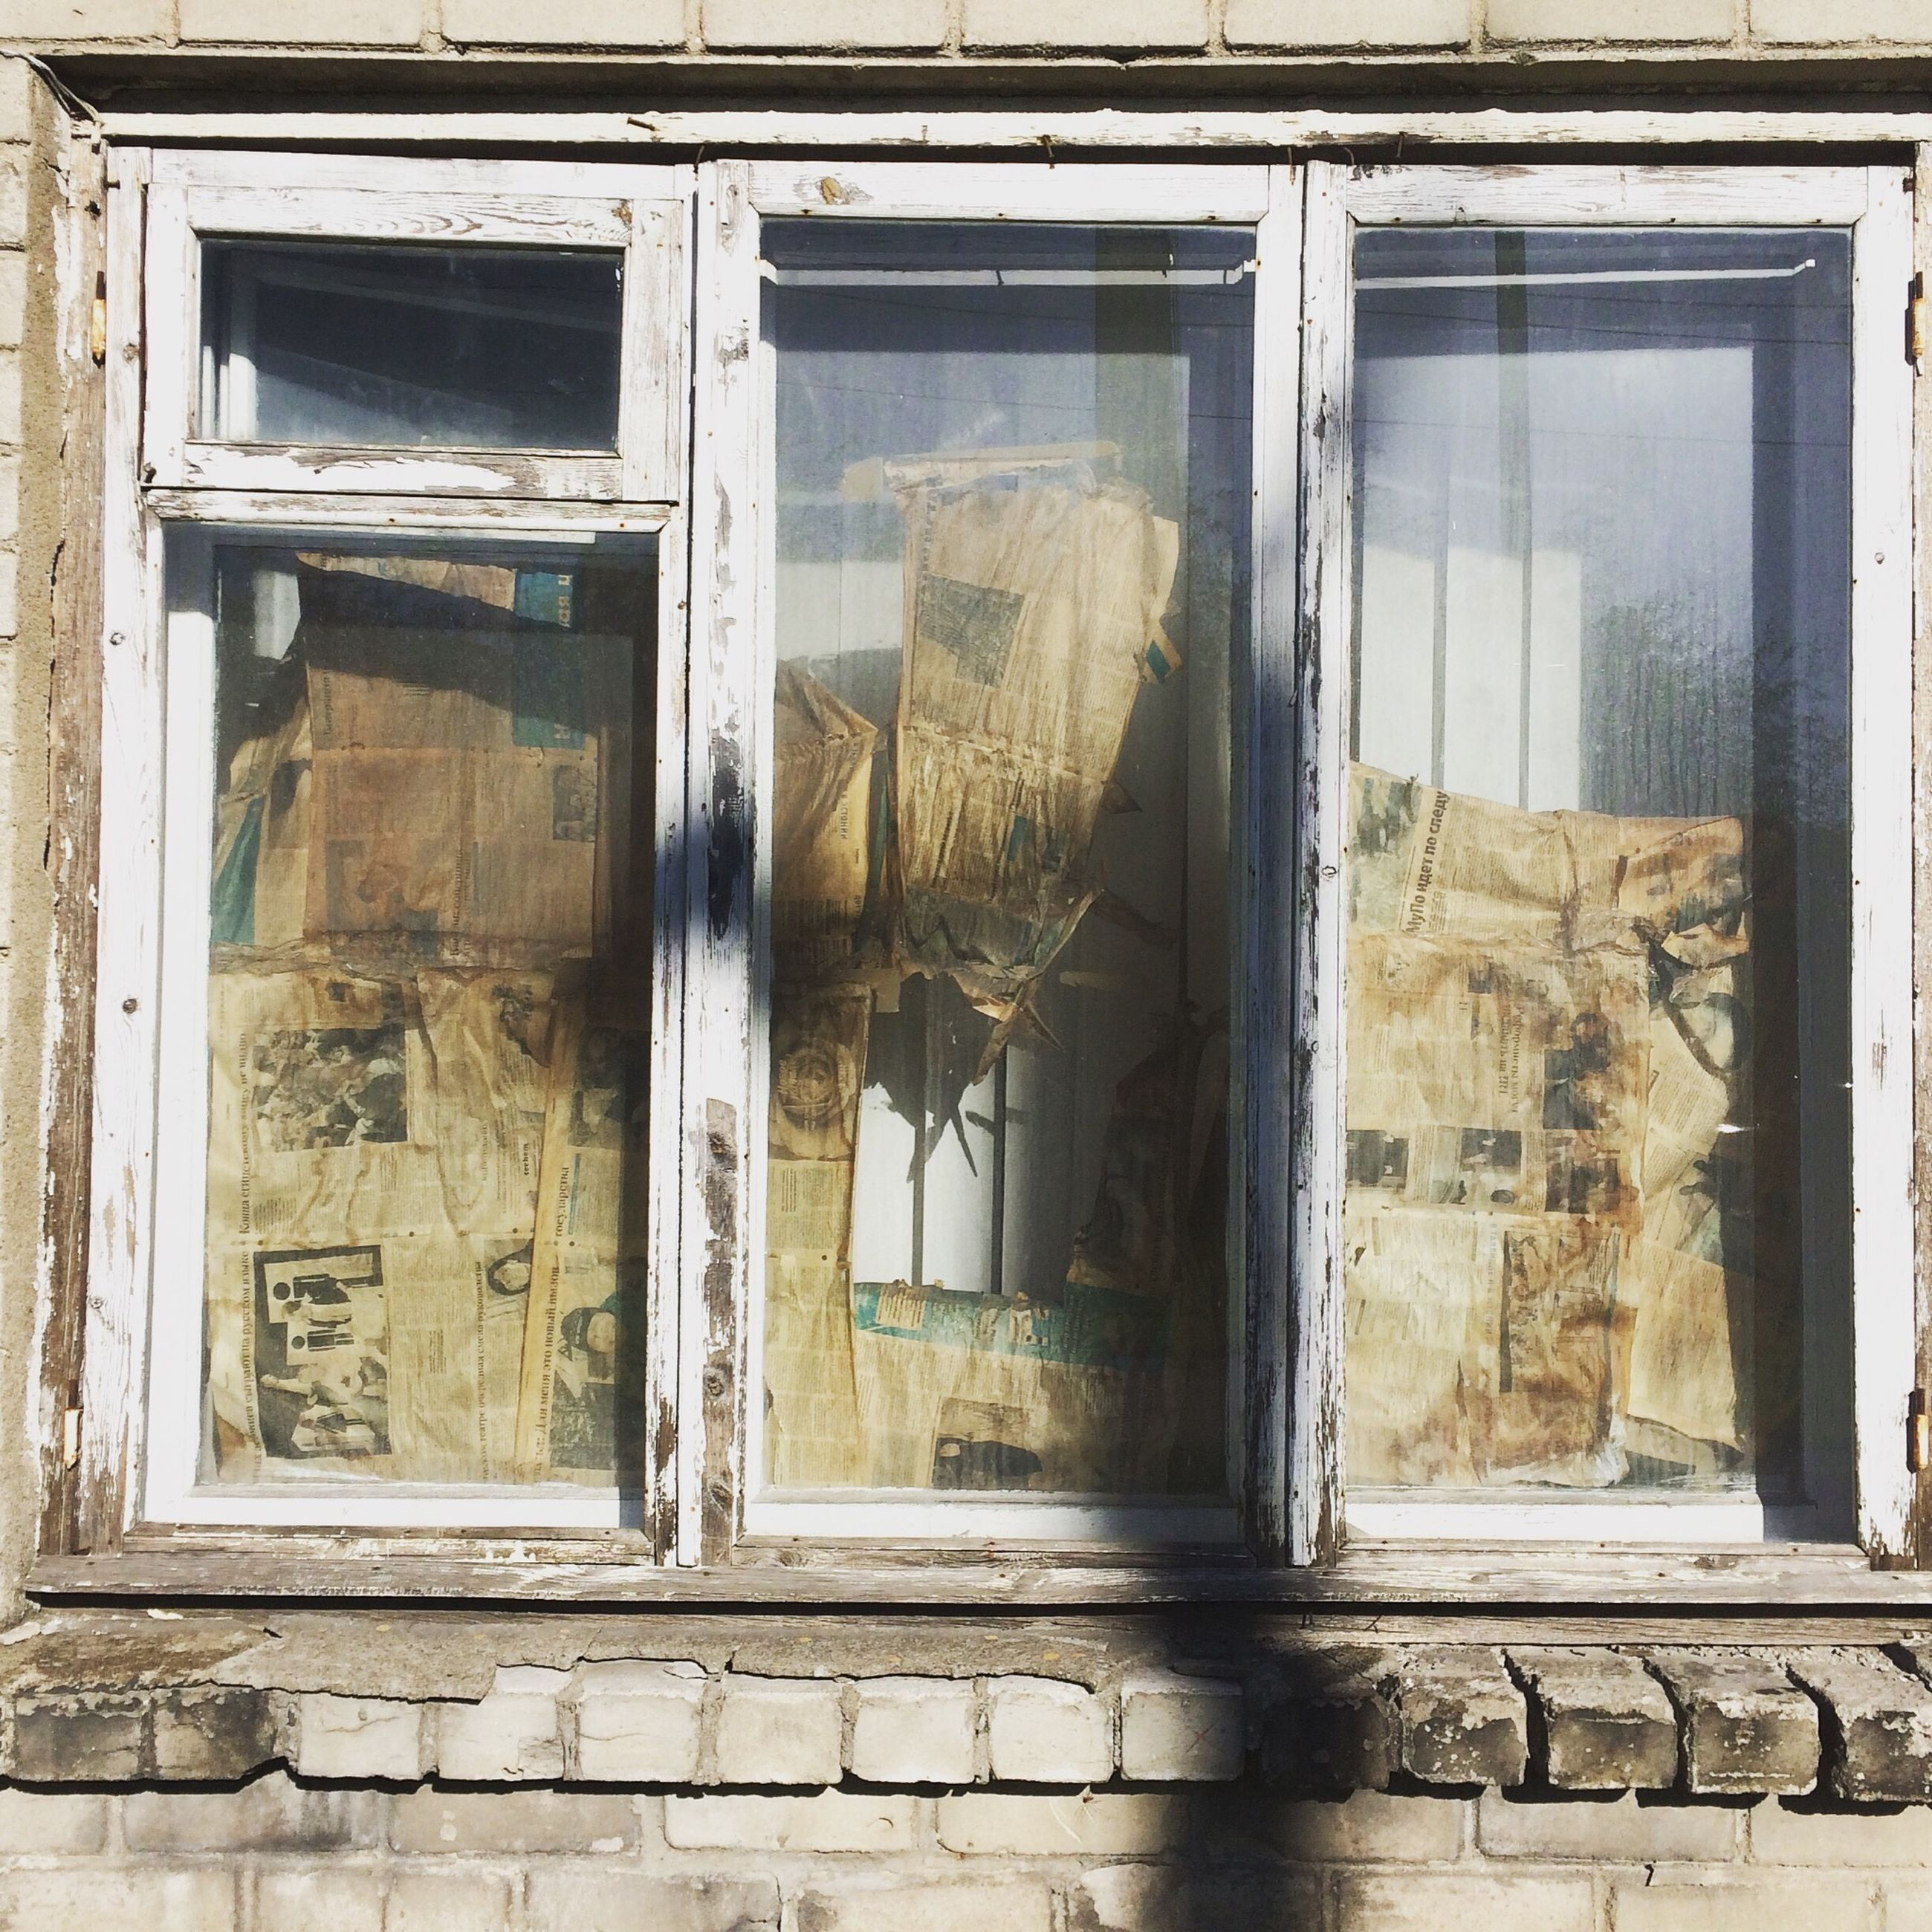 architecture, window, built structure, building exterior, house, glass - material, old, door, abandoned, closed, residential building, building, residential structure, damaged, weathered, obsolete, day, run-down, entrance, open